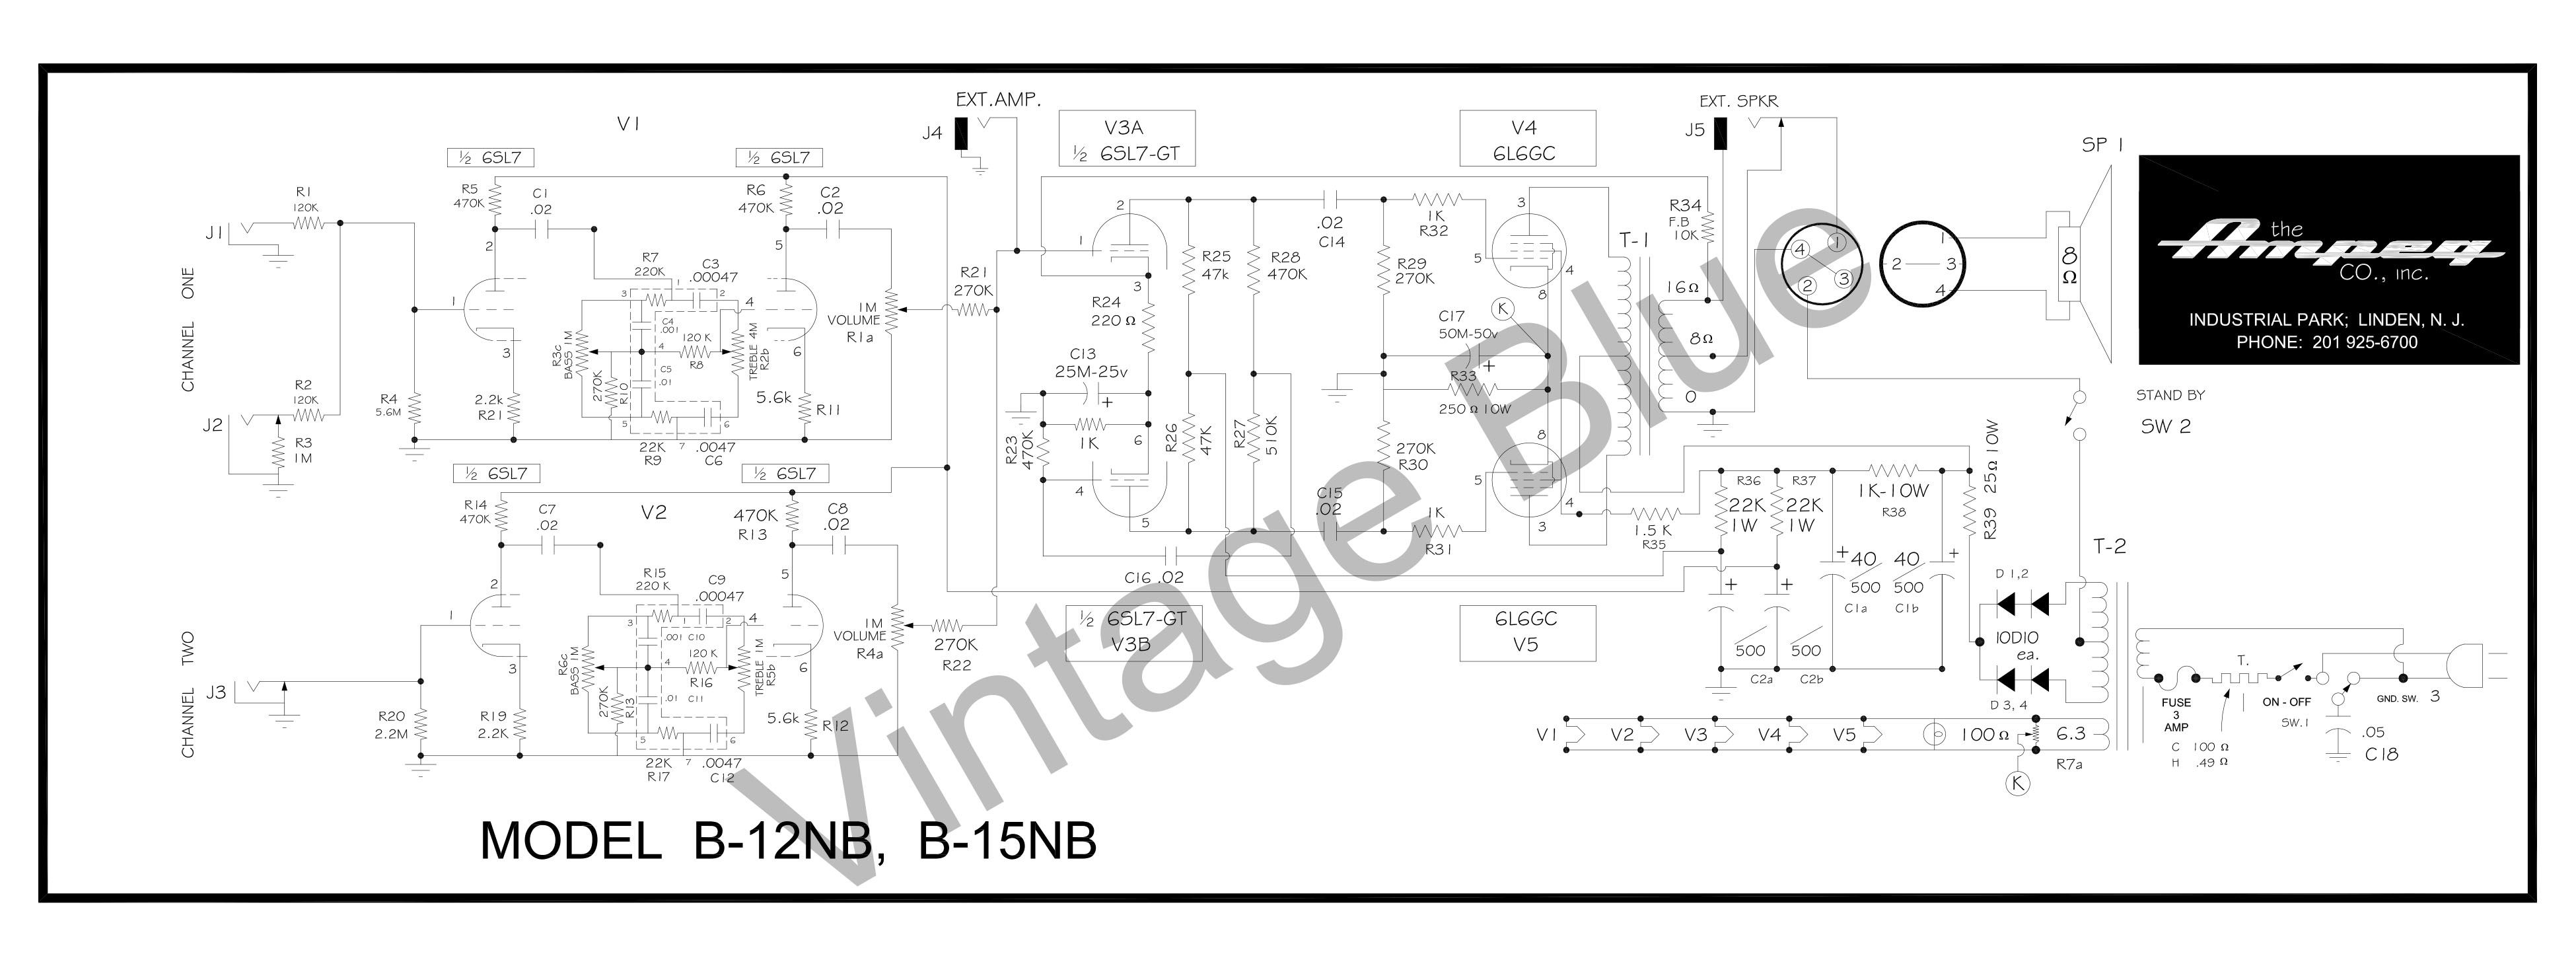 b15nb_schematic Powerflex Wiring Diagram Pdf on 5hp dimensions, ul type 1 kit for, brake resistor, i o wiring, fan disable, cat4 exemple, frame size, using curve, mov jumper, enclosure kit, open cover,